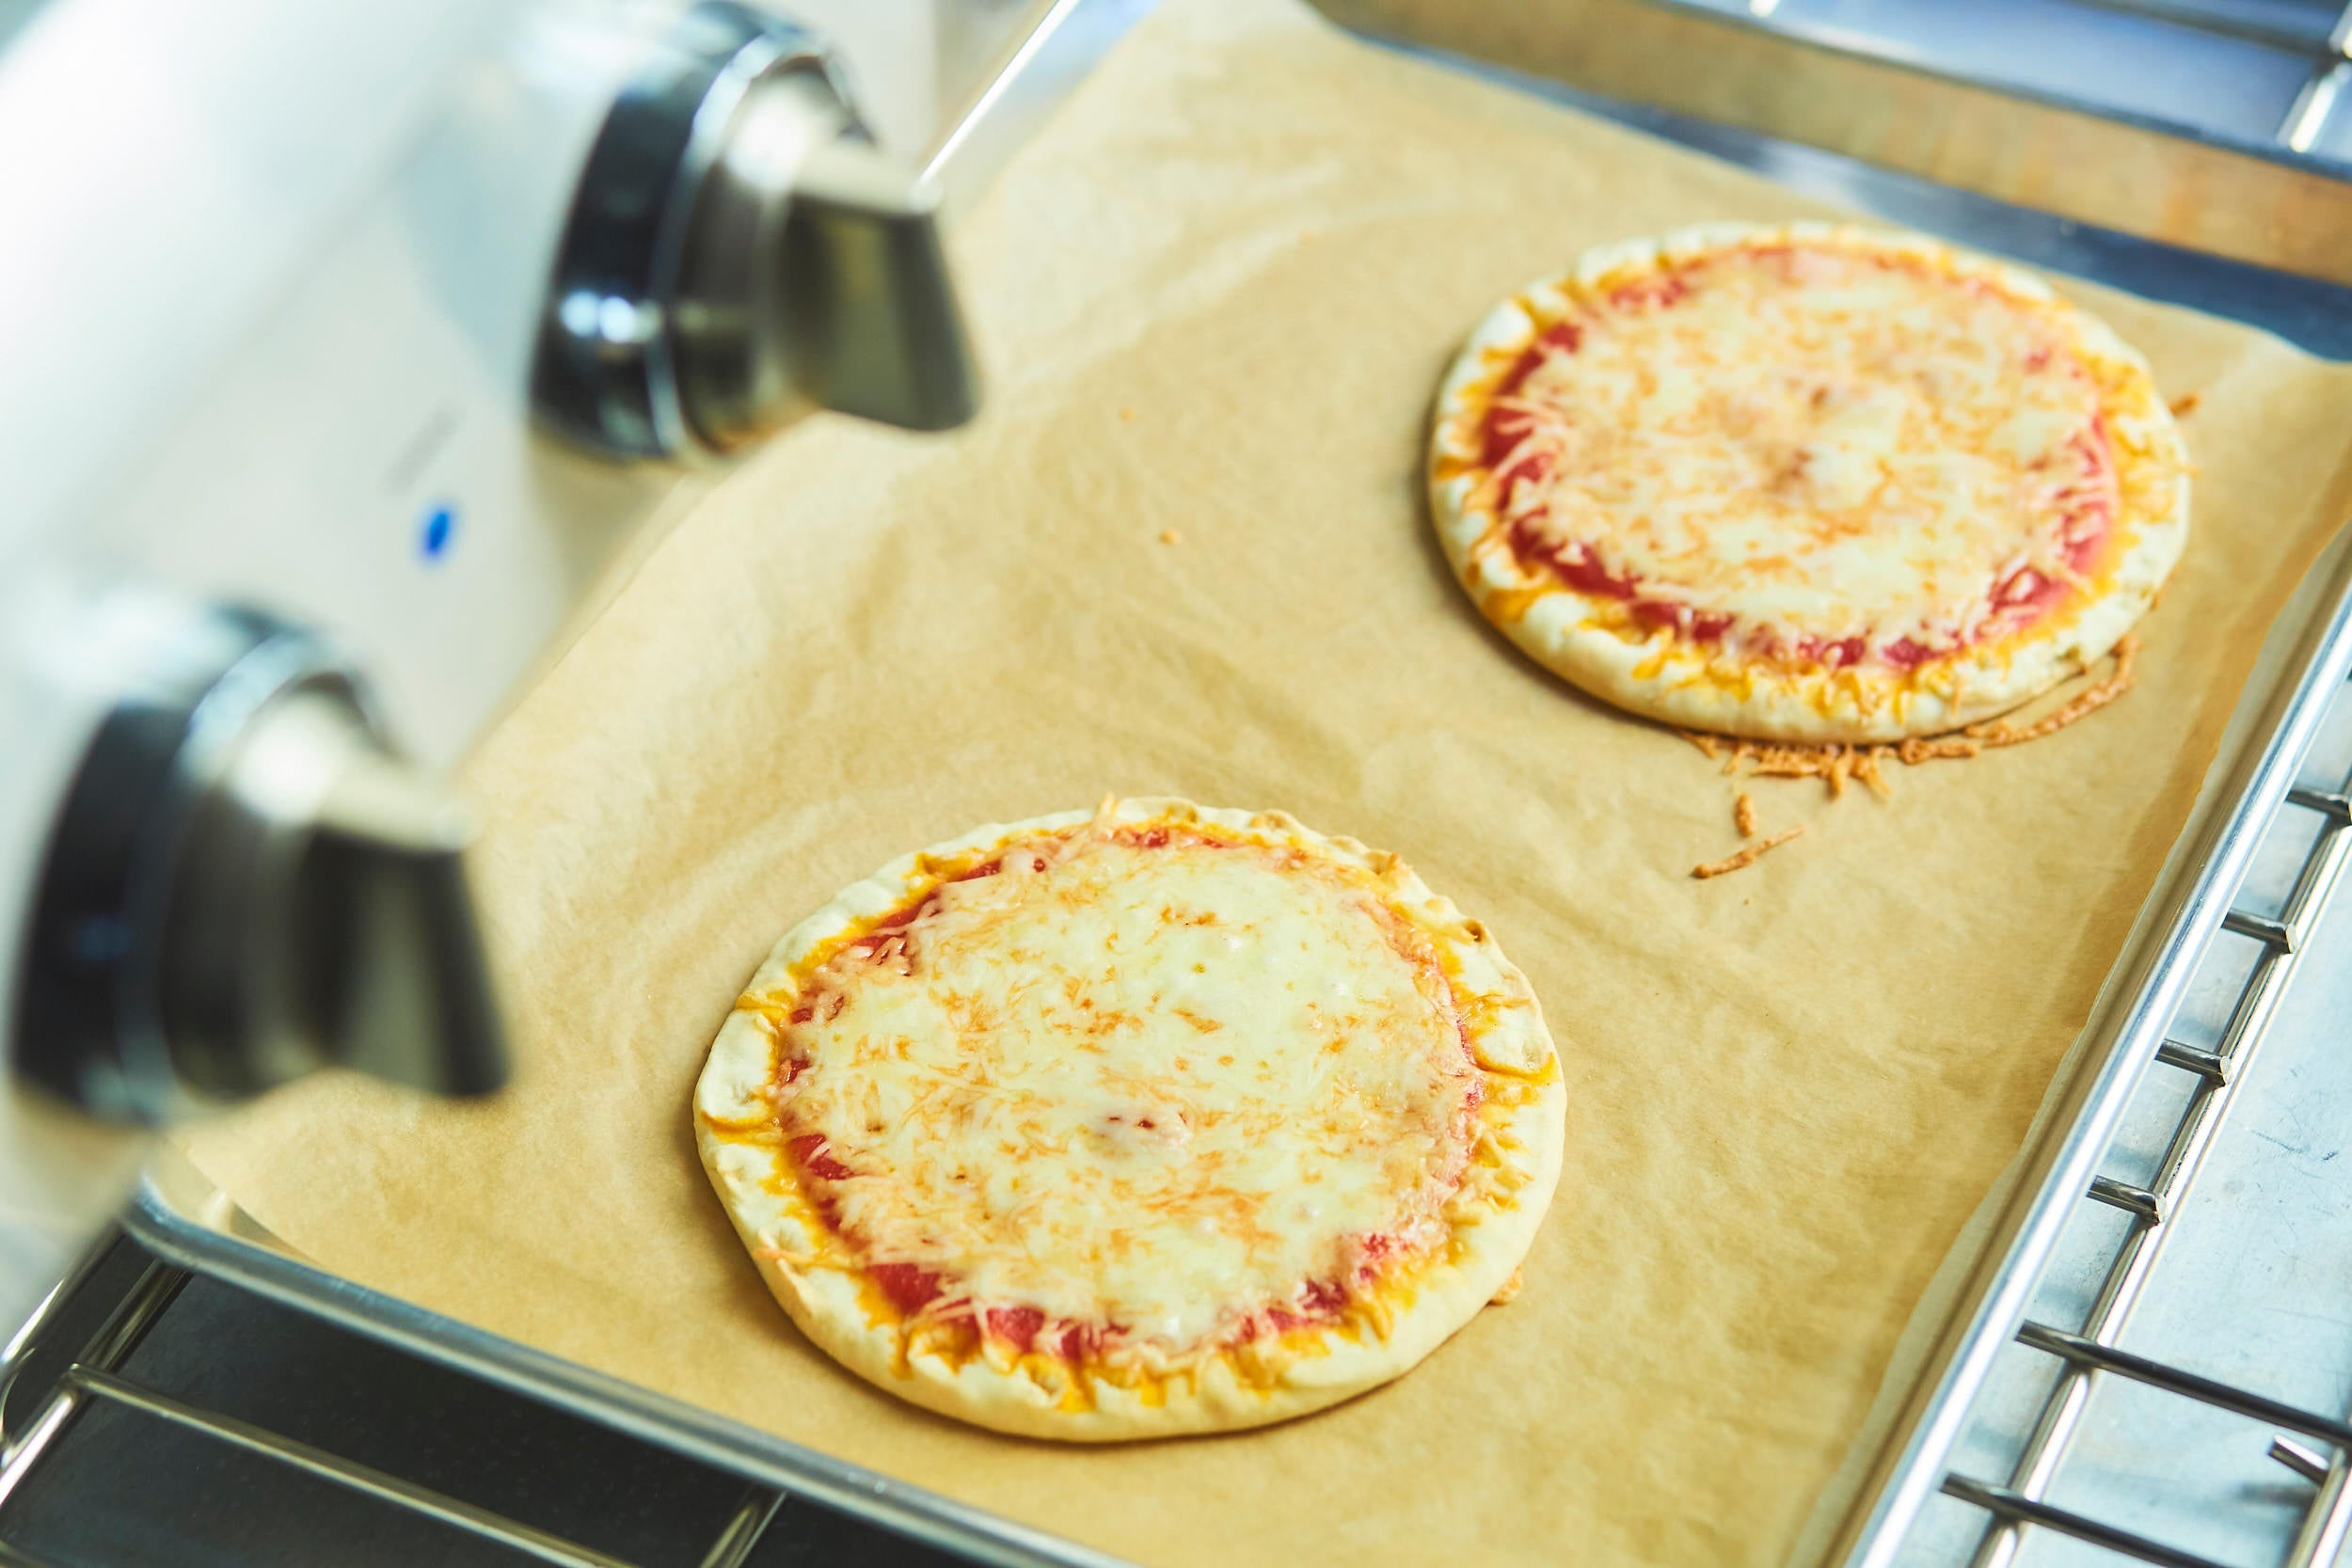 Kid's Four Cheese Italian Pita-Pizza